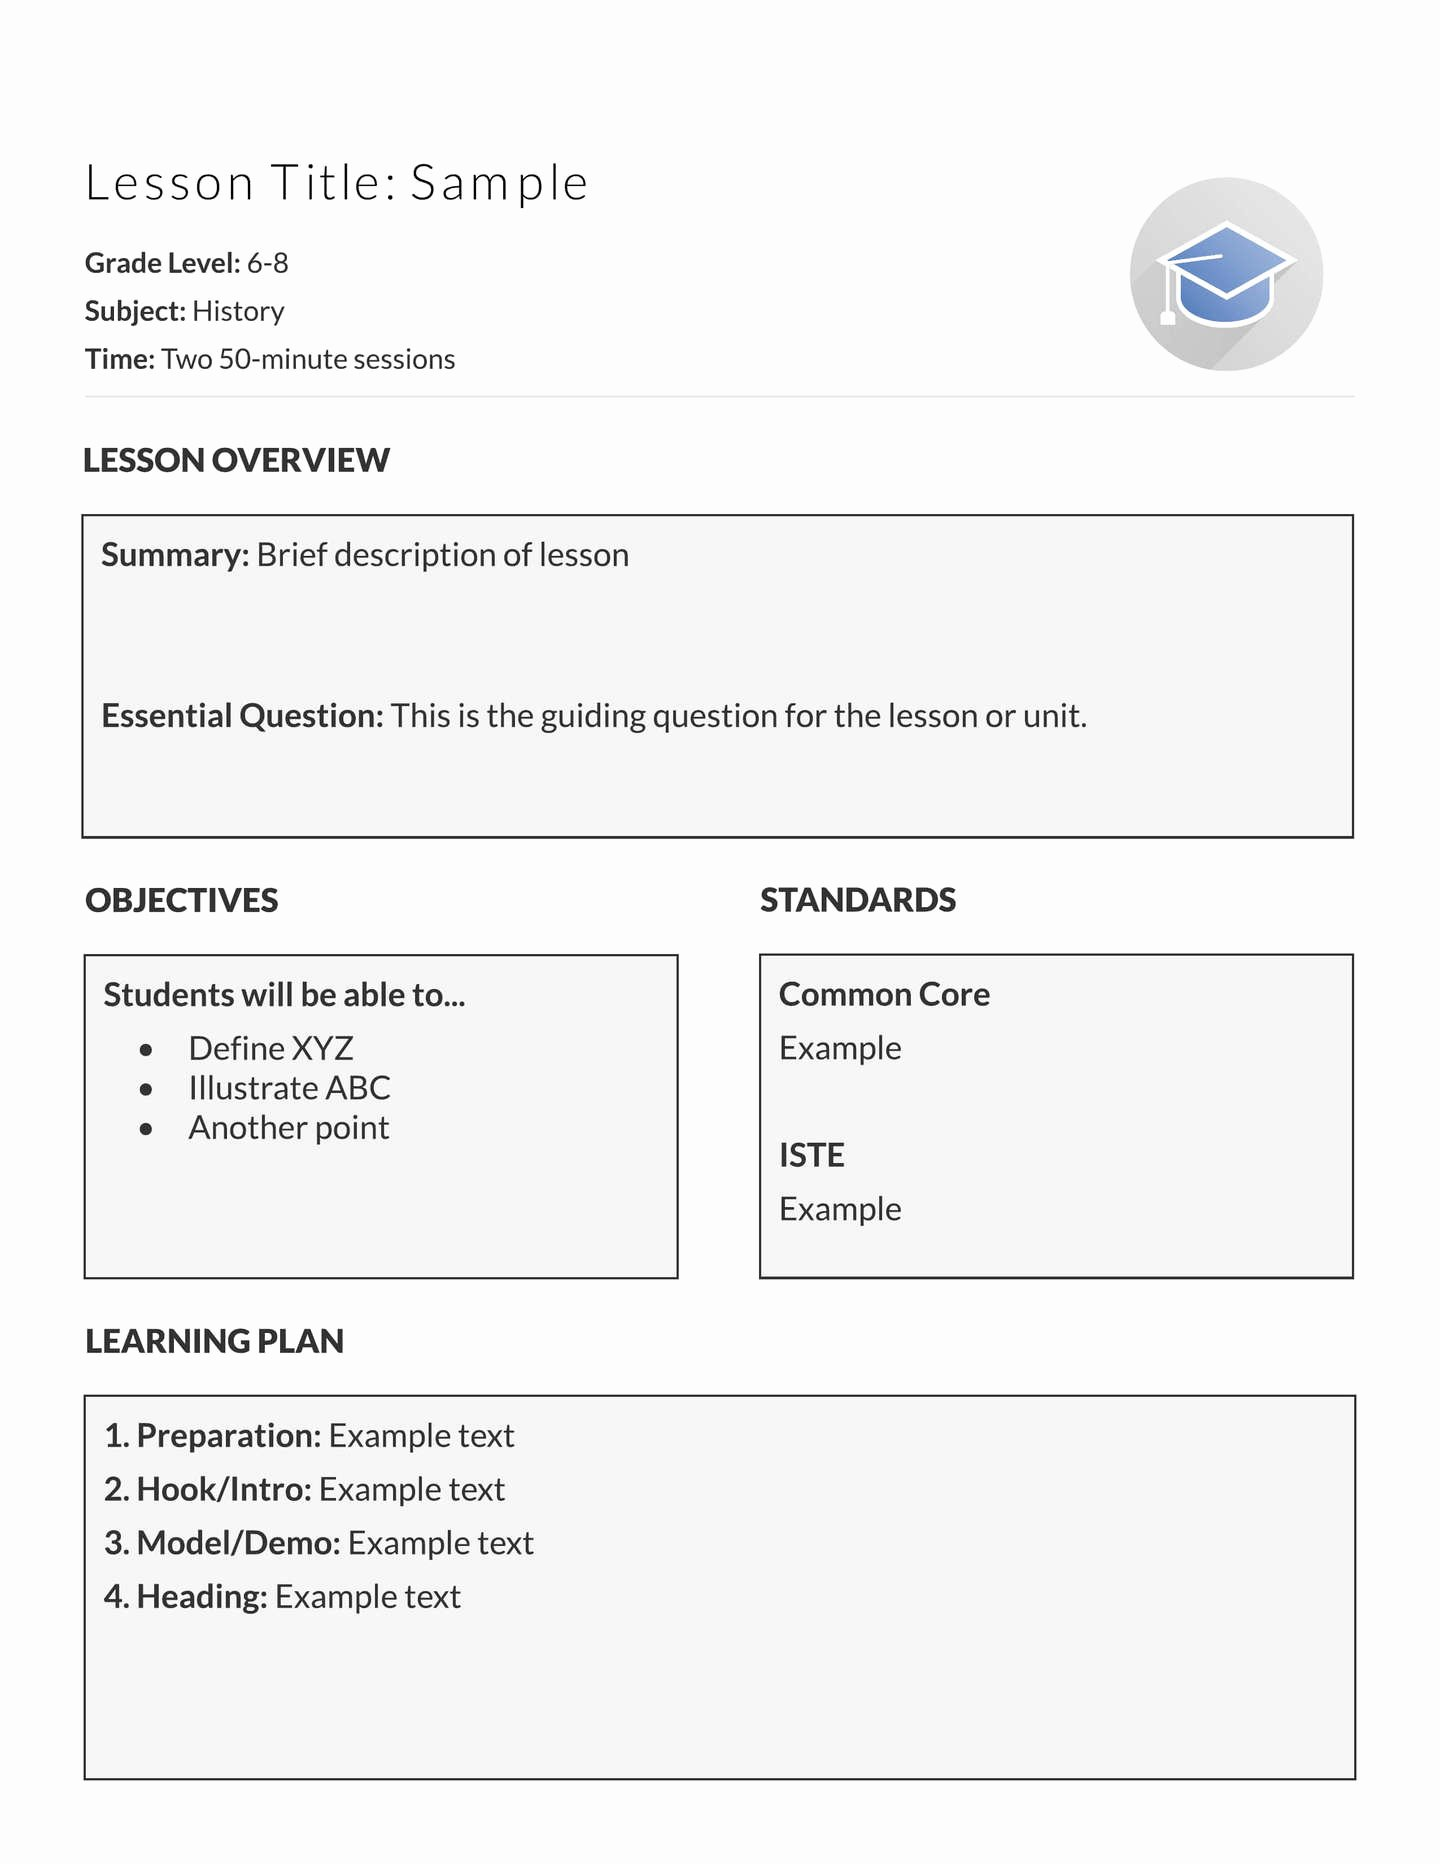 Easy Lesson Plan Template Best Of 5 Free Lesson Plan Templates & Examples Lucidpress